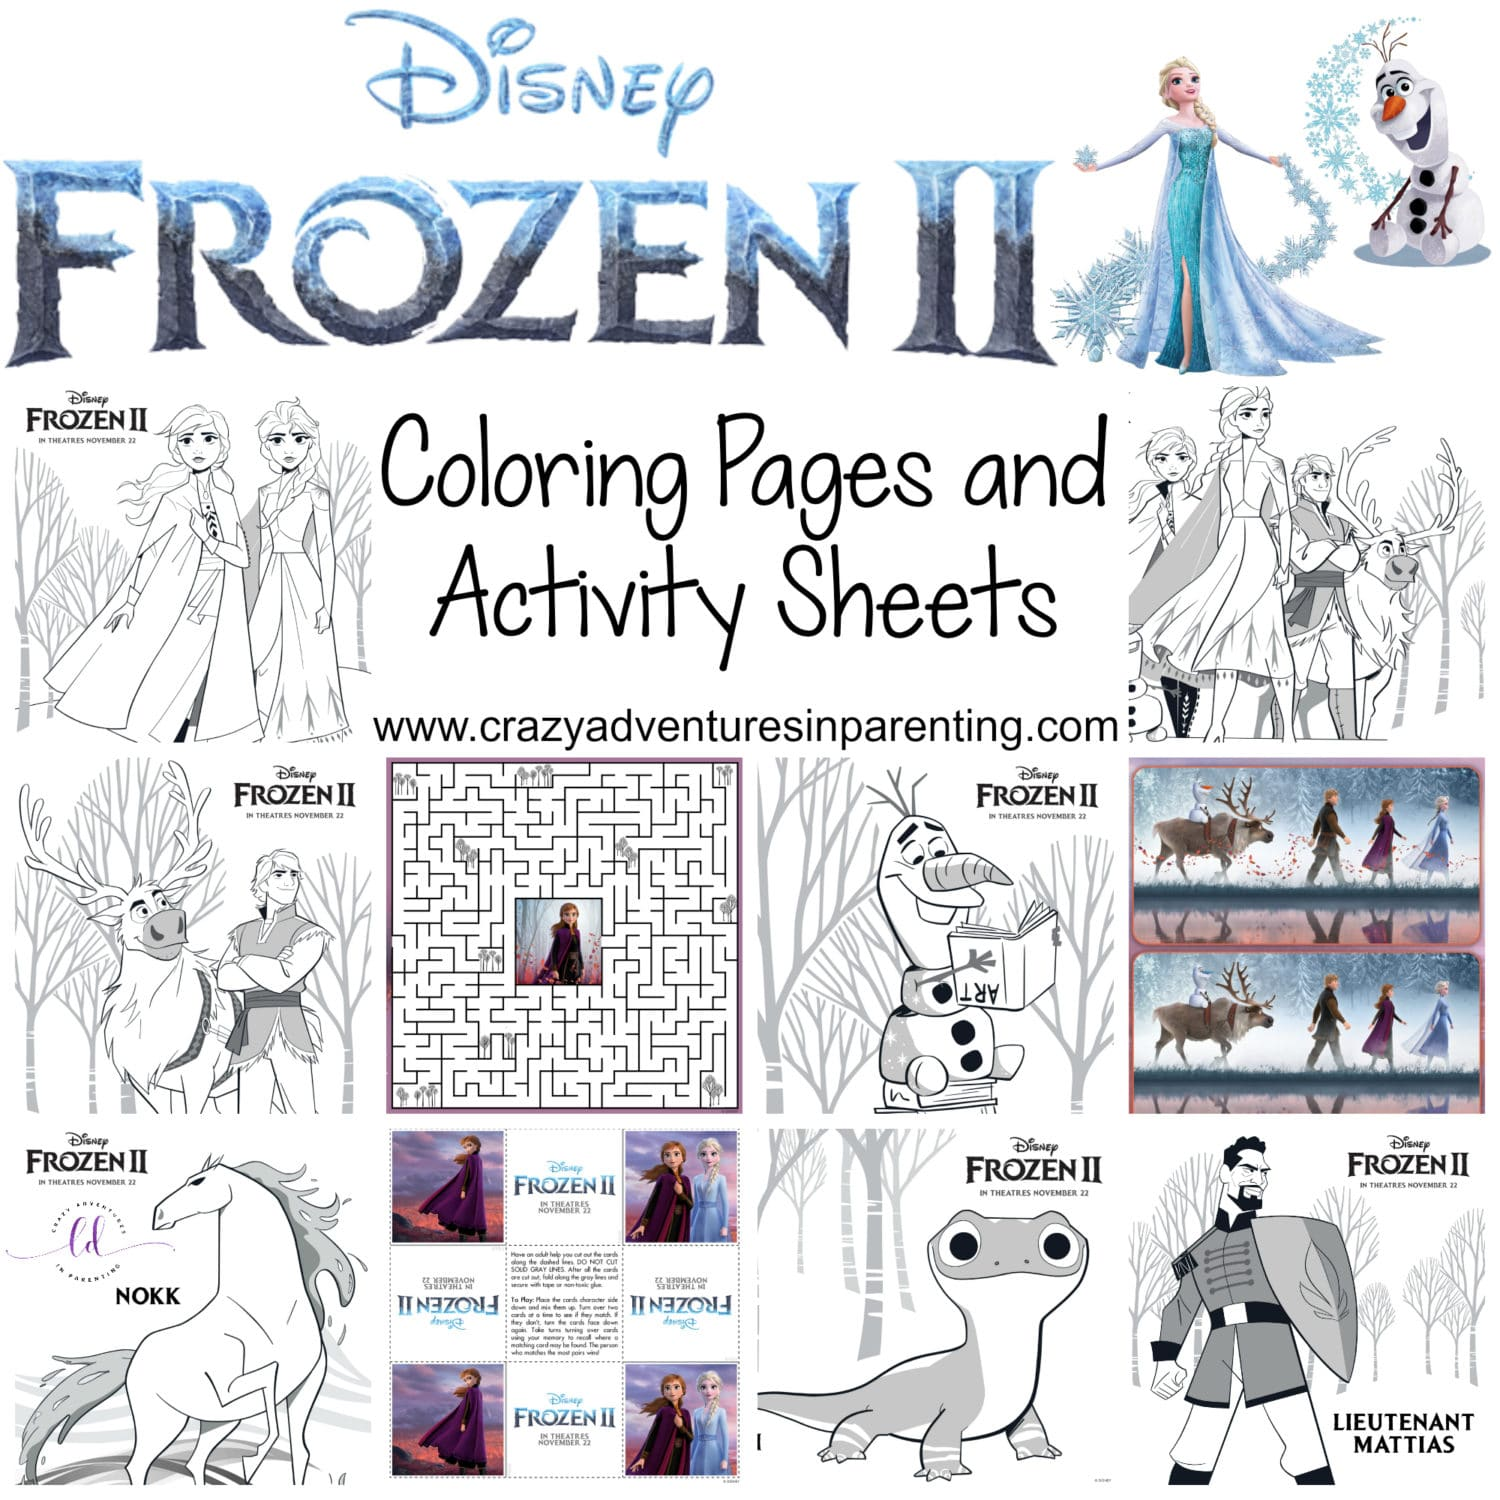 Disney Frozen 2 Coloring Pages and Activity Sheets